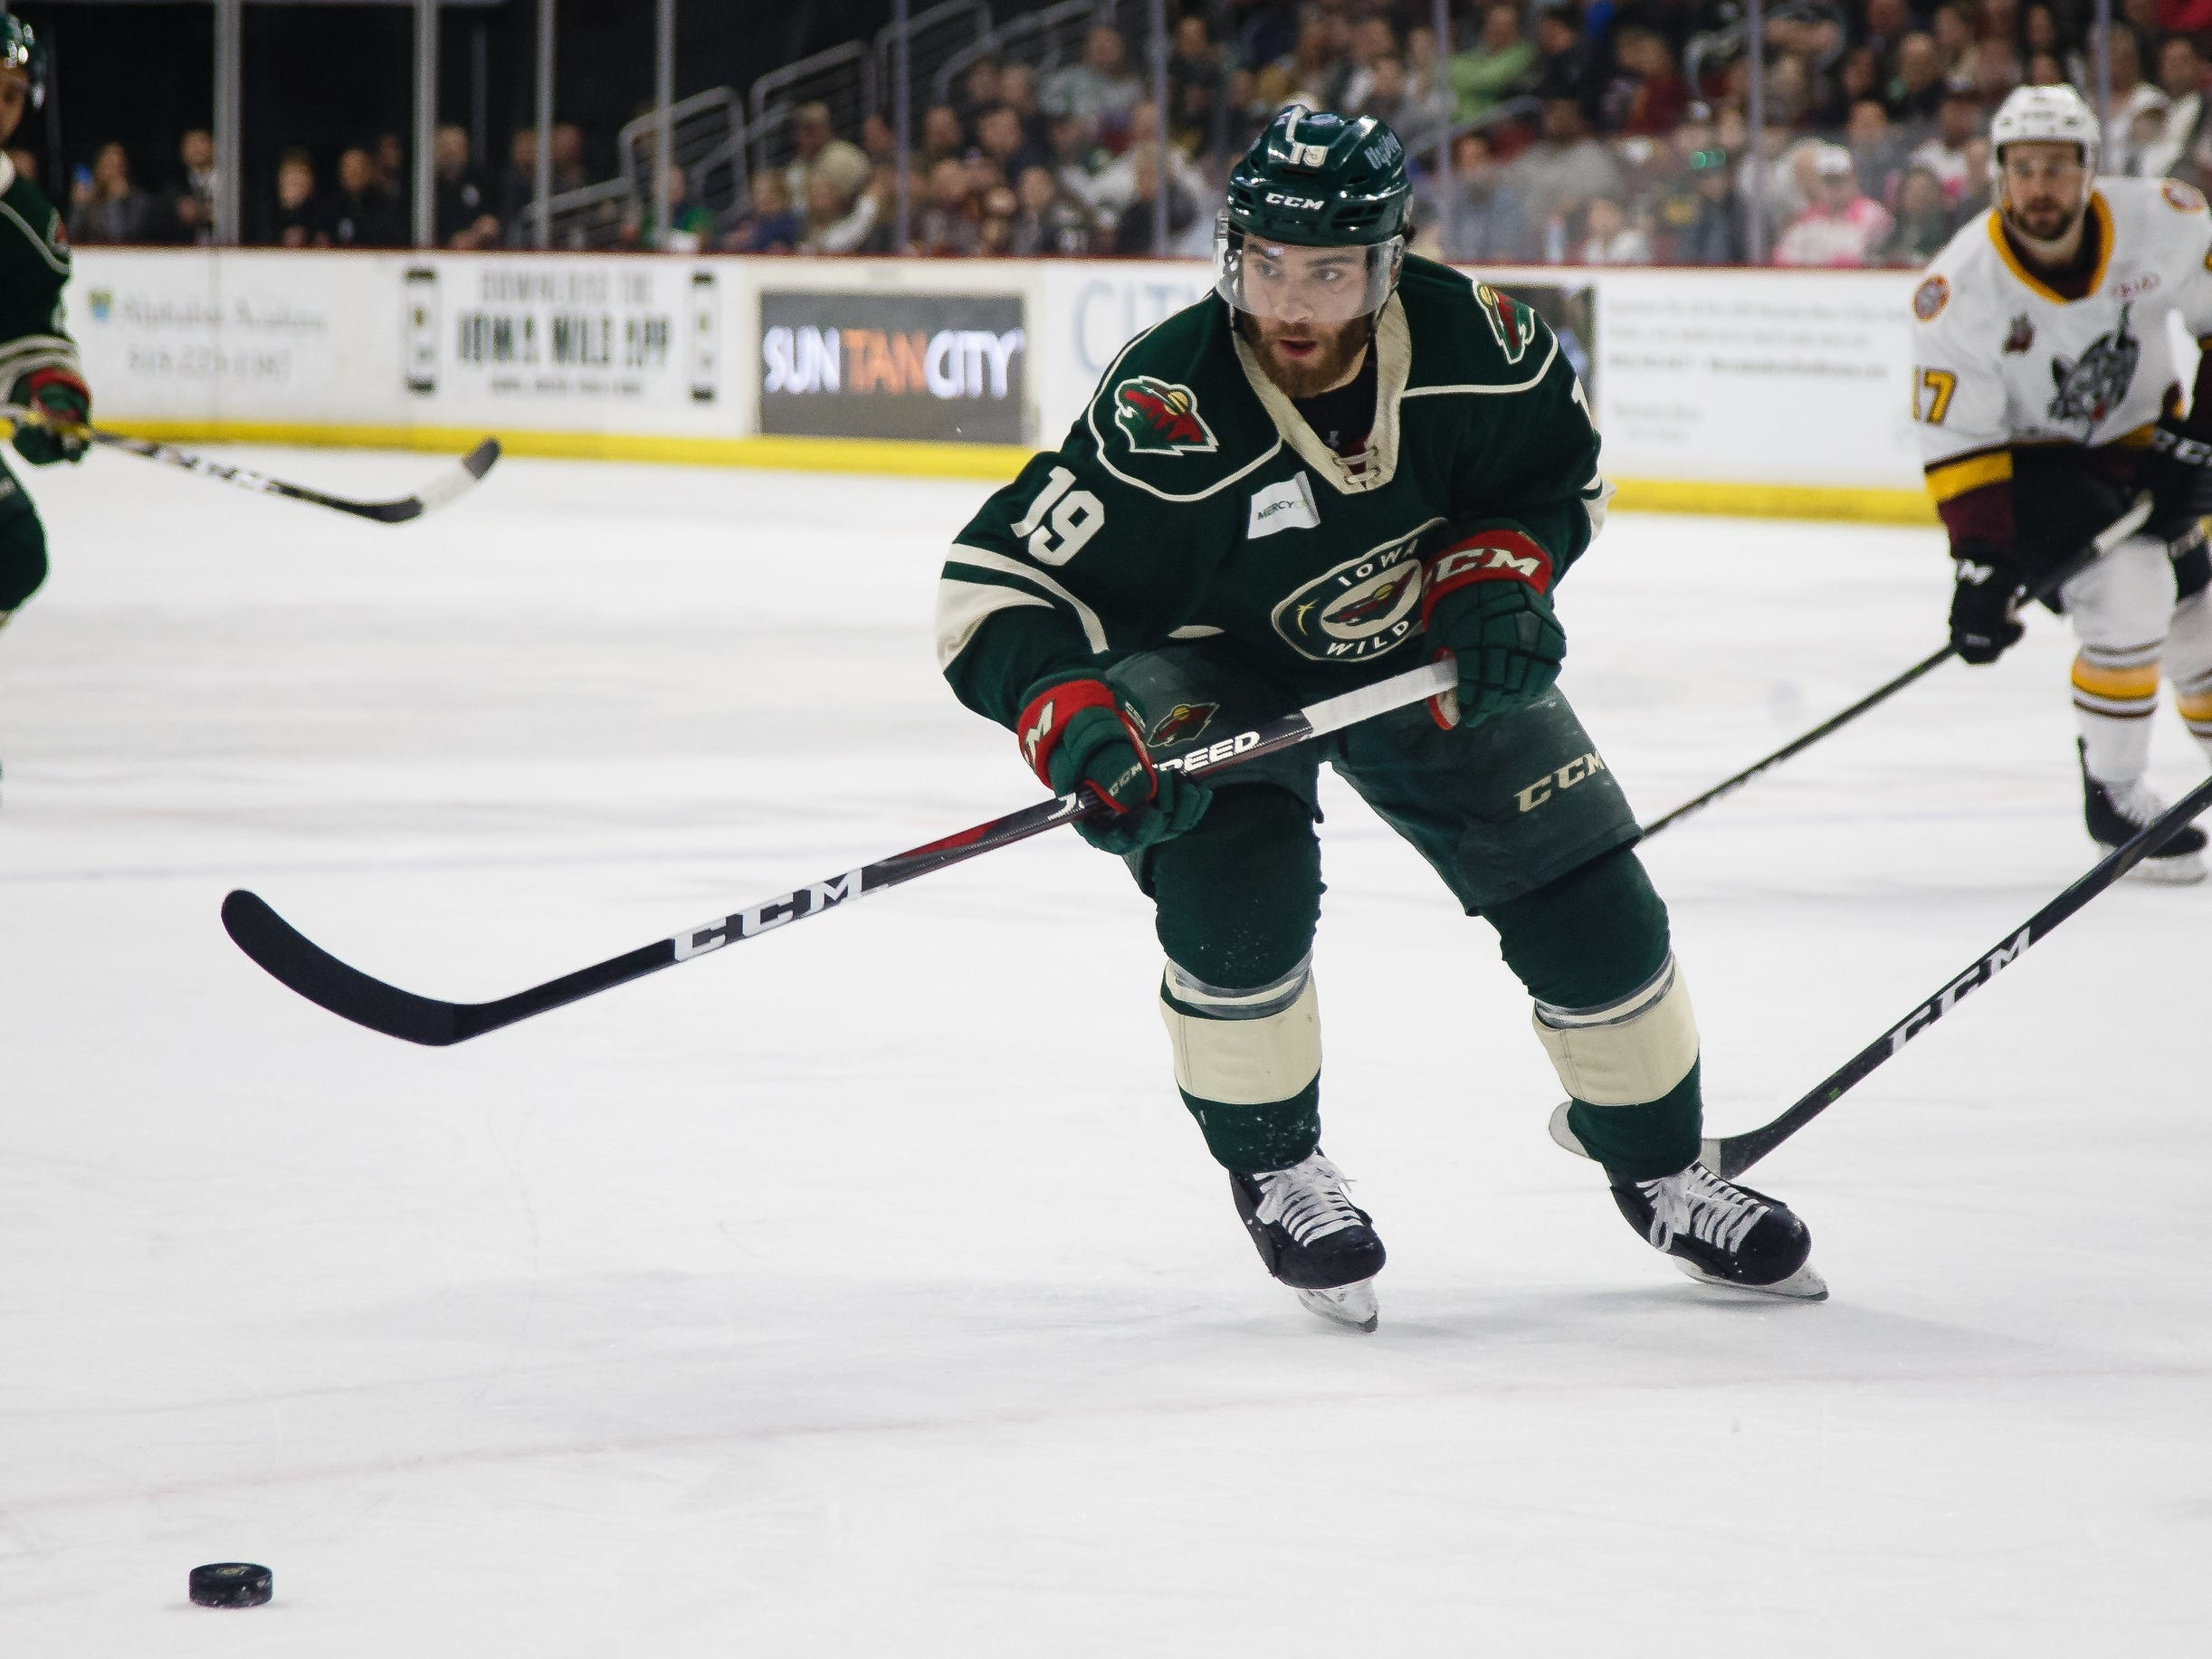 The Iowa Wild's Luke Kunin chases down a puck during the second period of their Calder Cup playoff hockey game against the Chicago Wolves on Friday, May 10, 2019, in Des Moines.